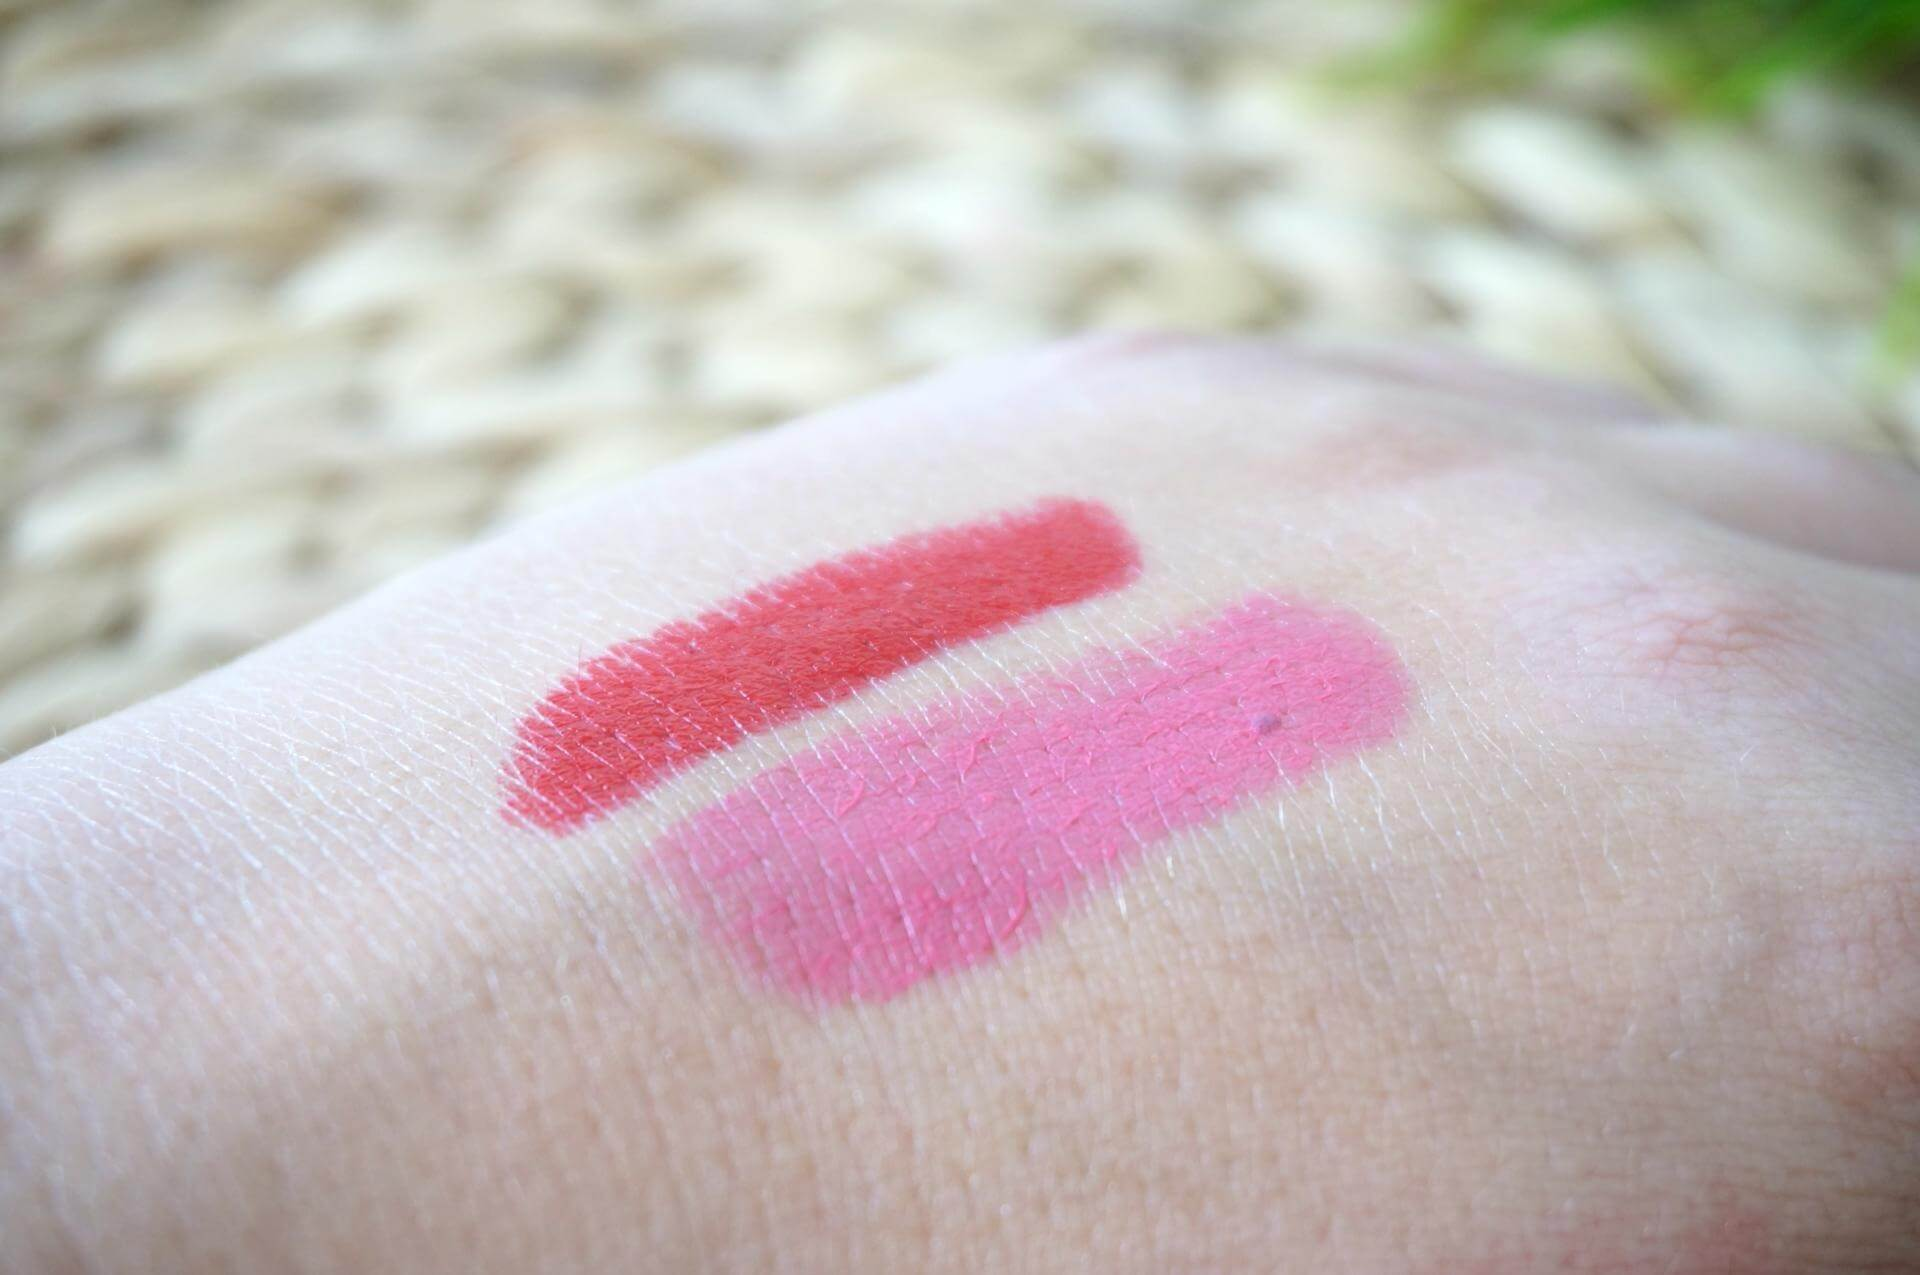 Etos color care lipsticks